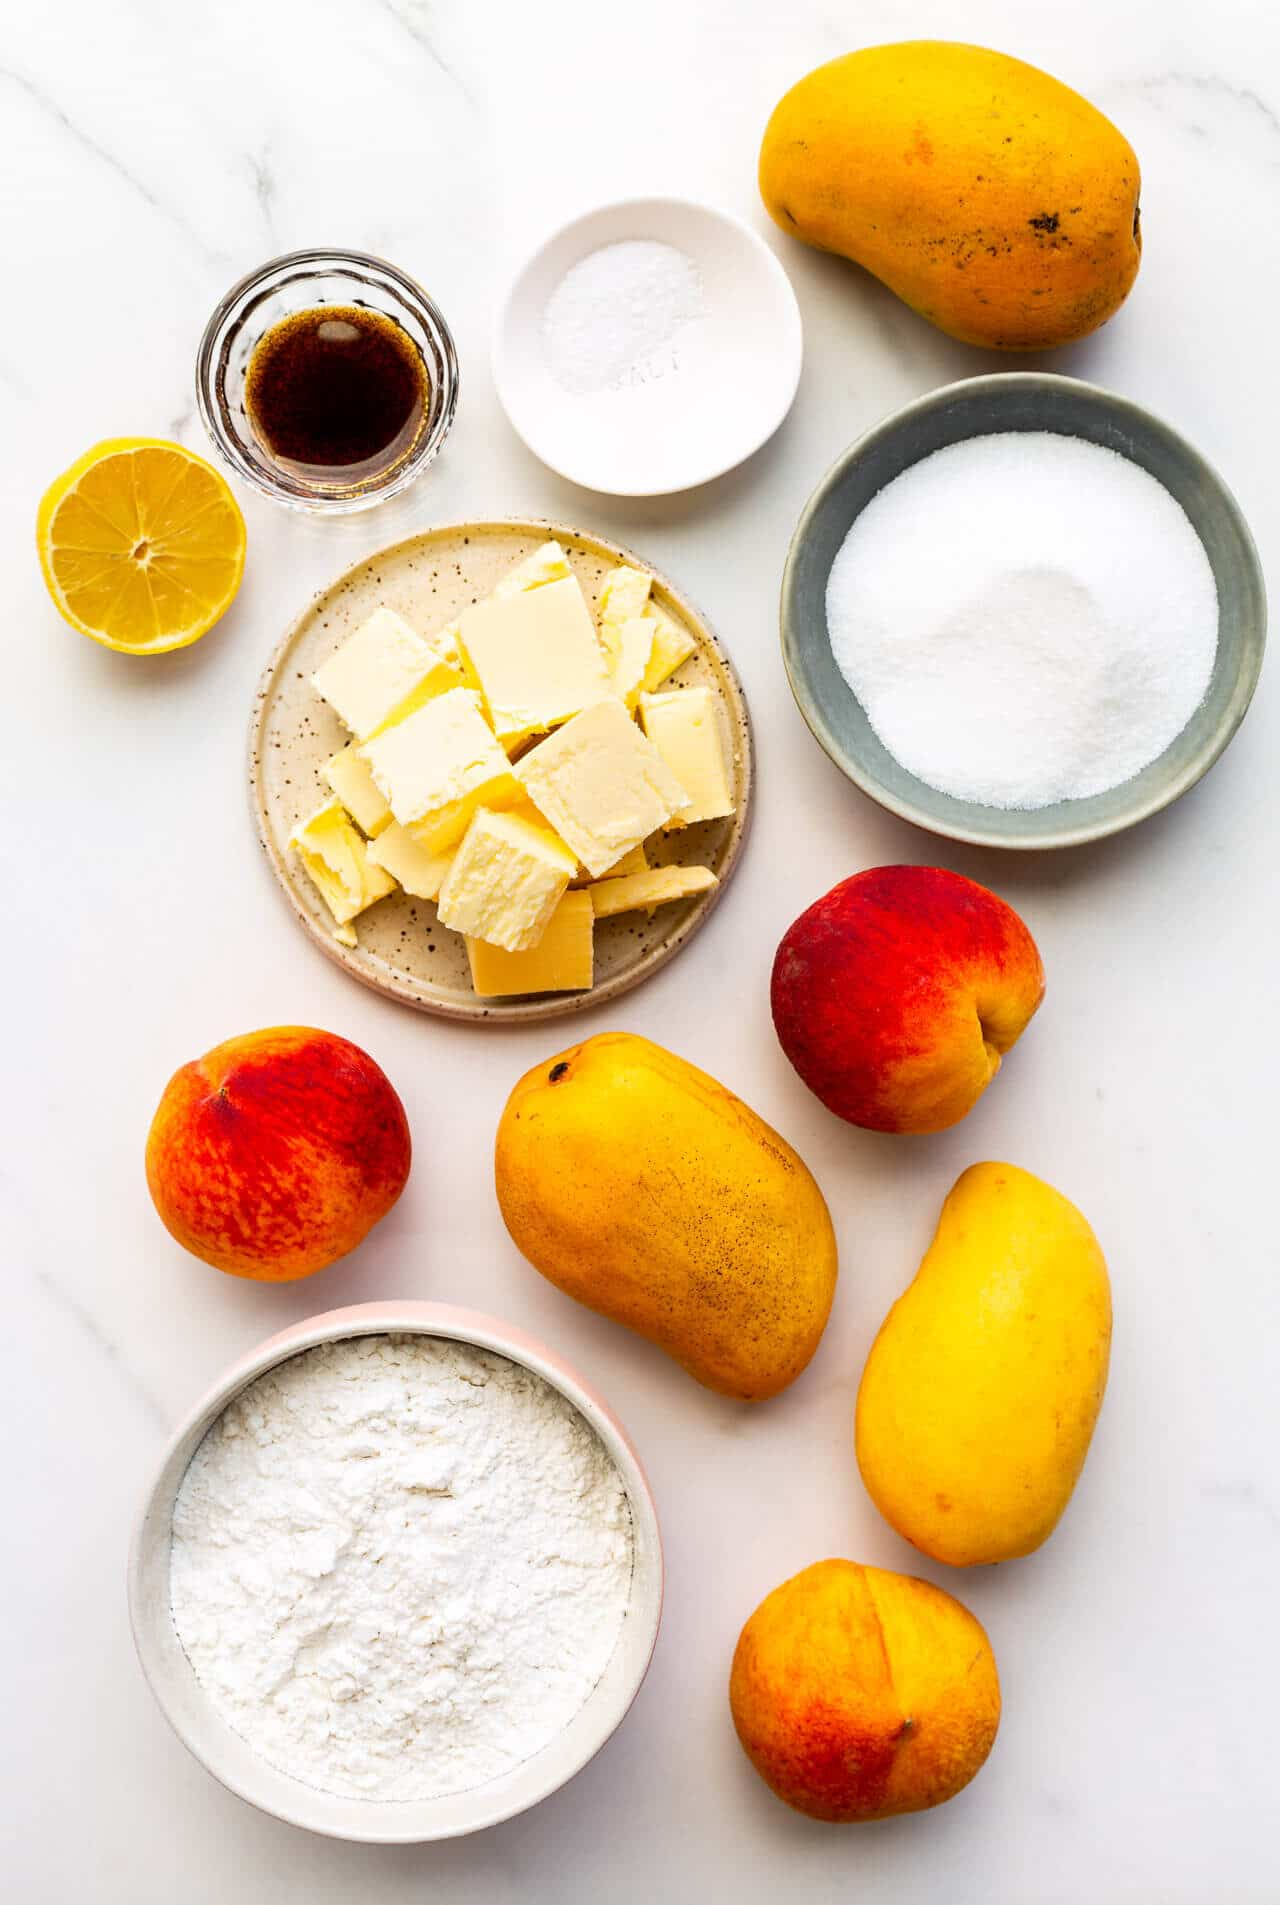 Ingredients for peach mango pie measured out